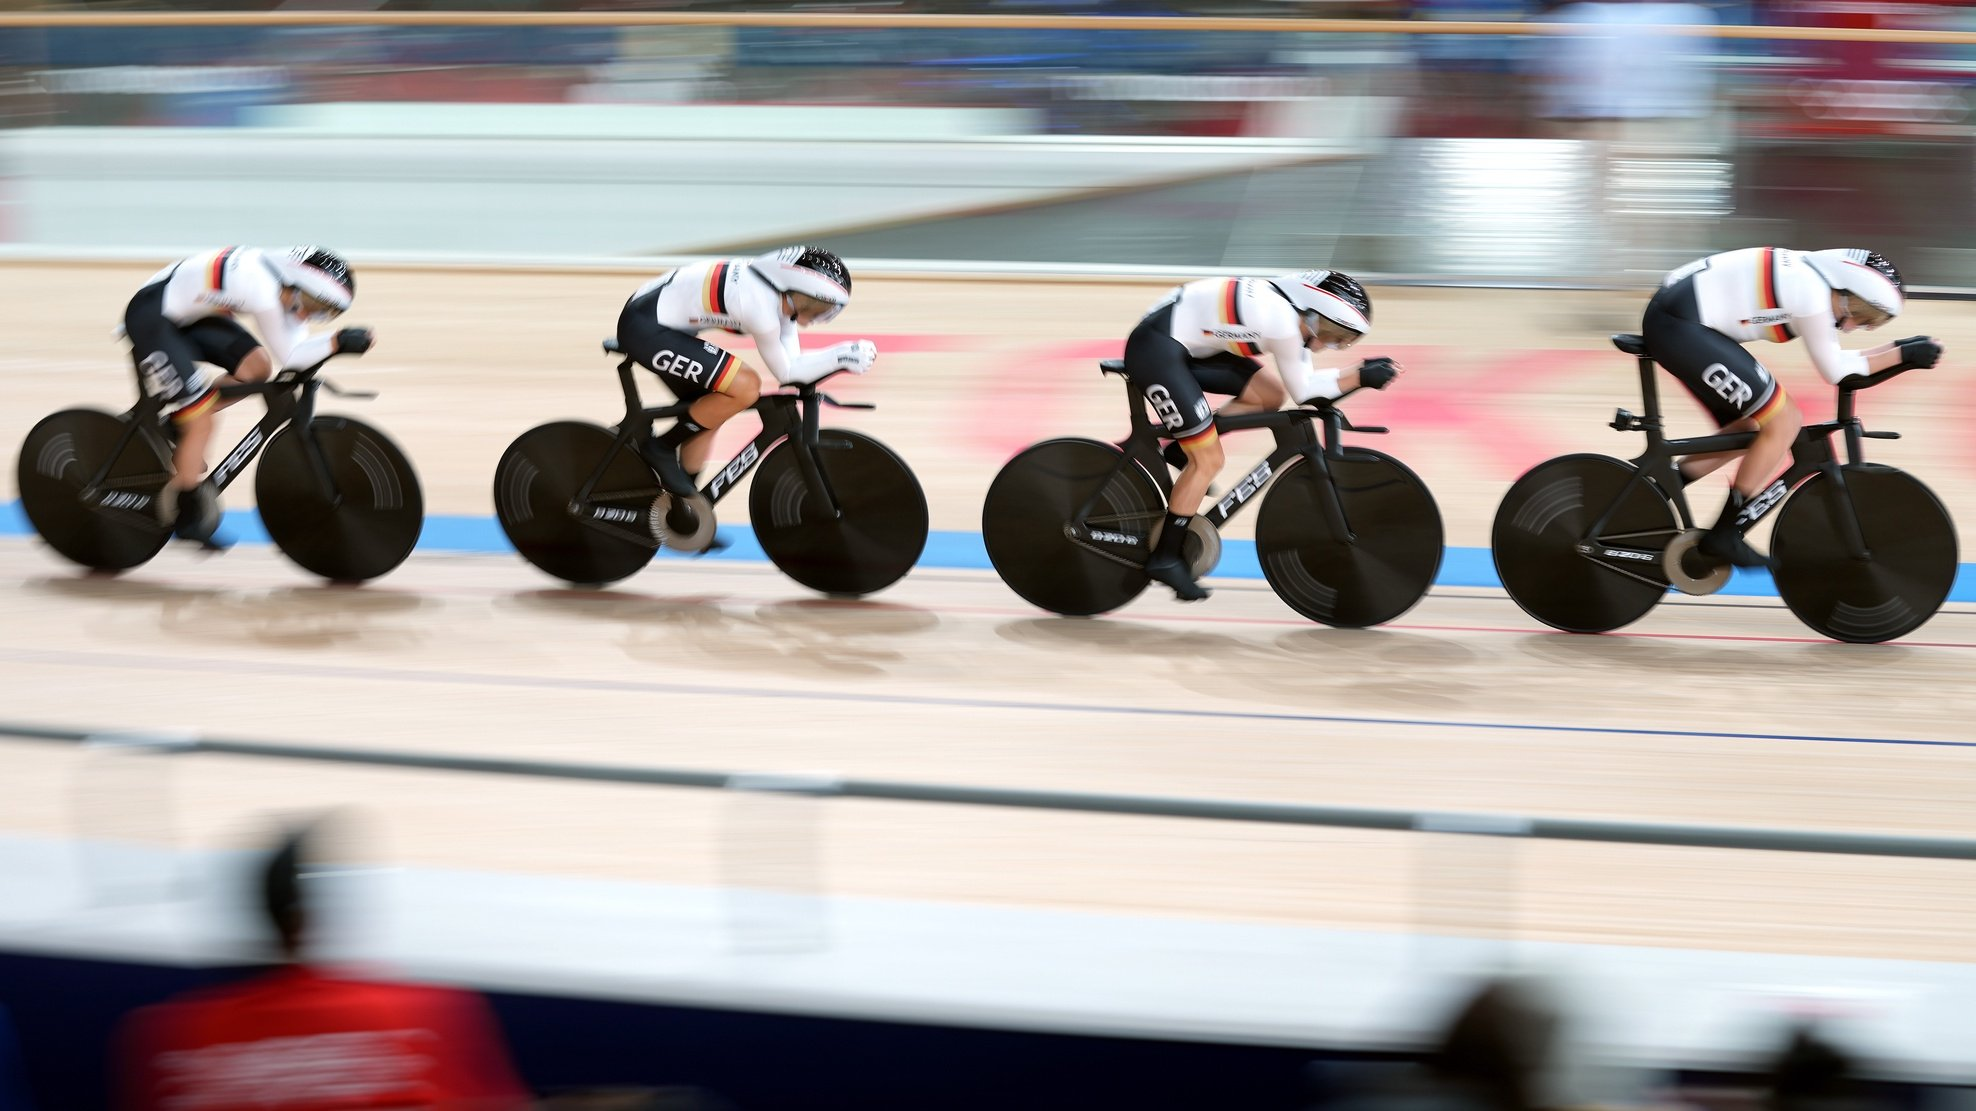 epa09387116 Team Germany in action during the Women's Team Pursuit qualifying during the Track Cycling events of the Tokyo 2020 Olympic Games at the Izu Velodrome in Ono, Shizuoka, Japan, 02 August 2021.  EPA/CHRISTOPHER JUE